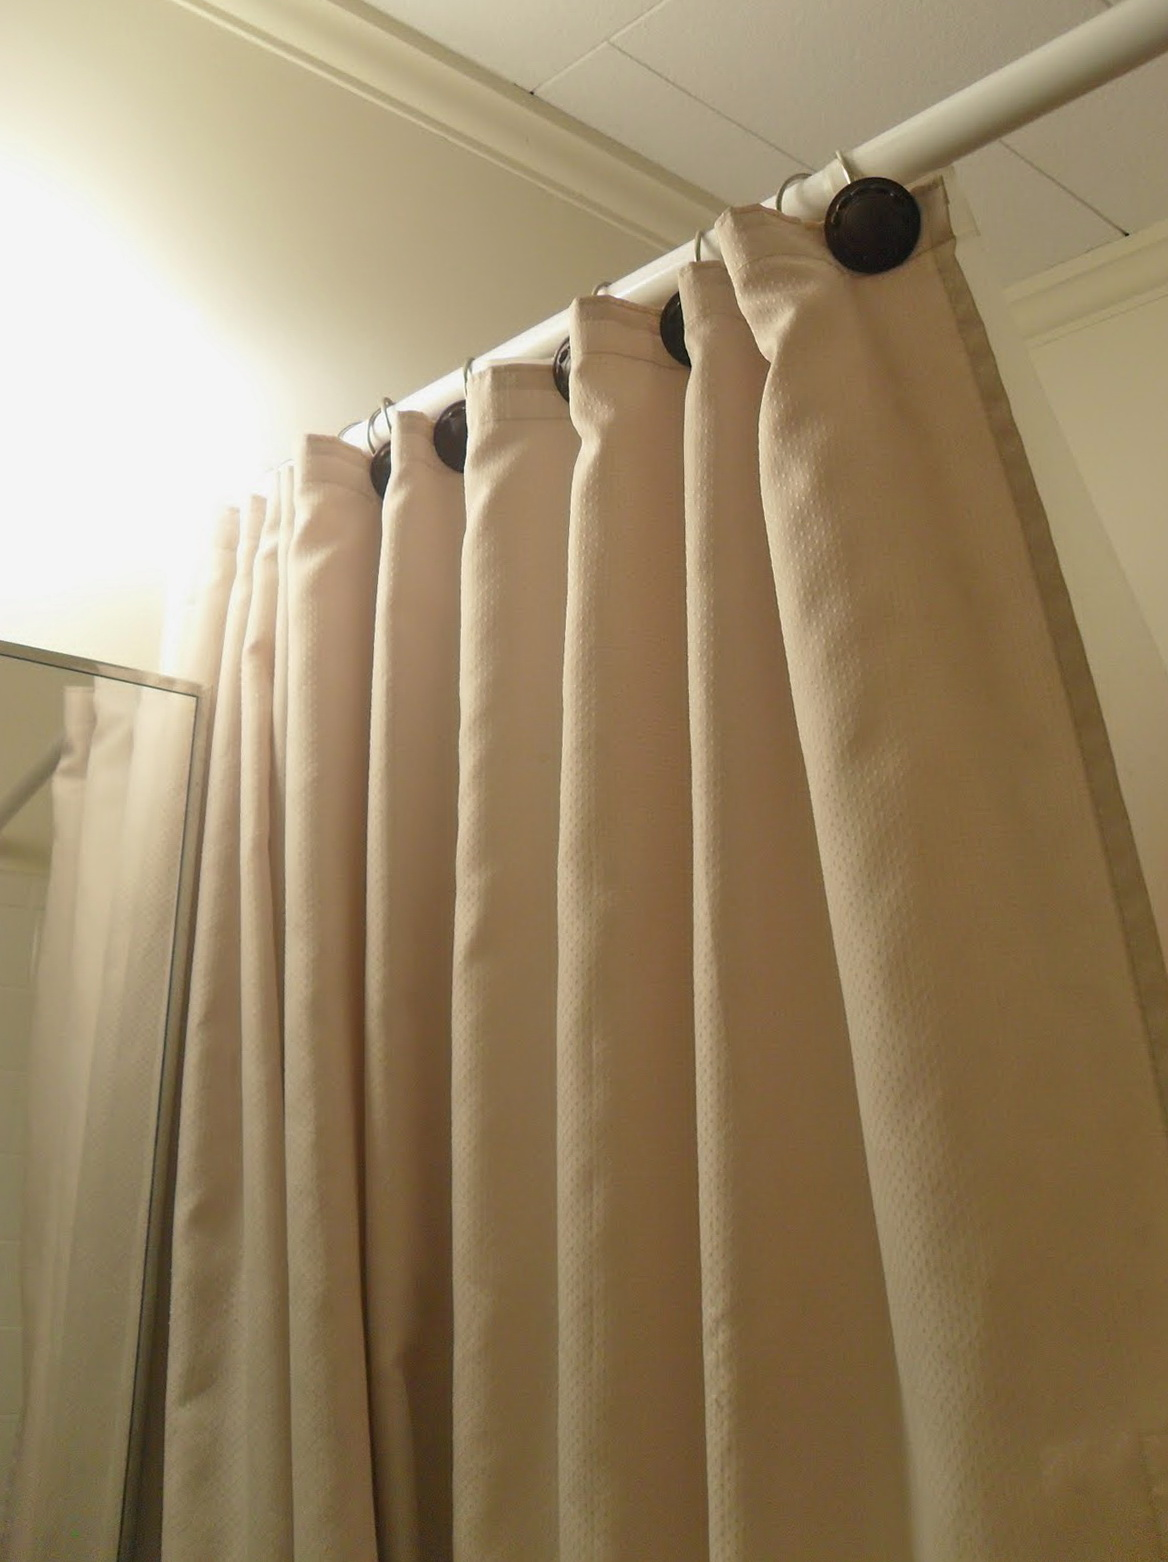 Curtain Rod Rings Target Home Design Ideas